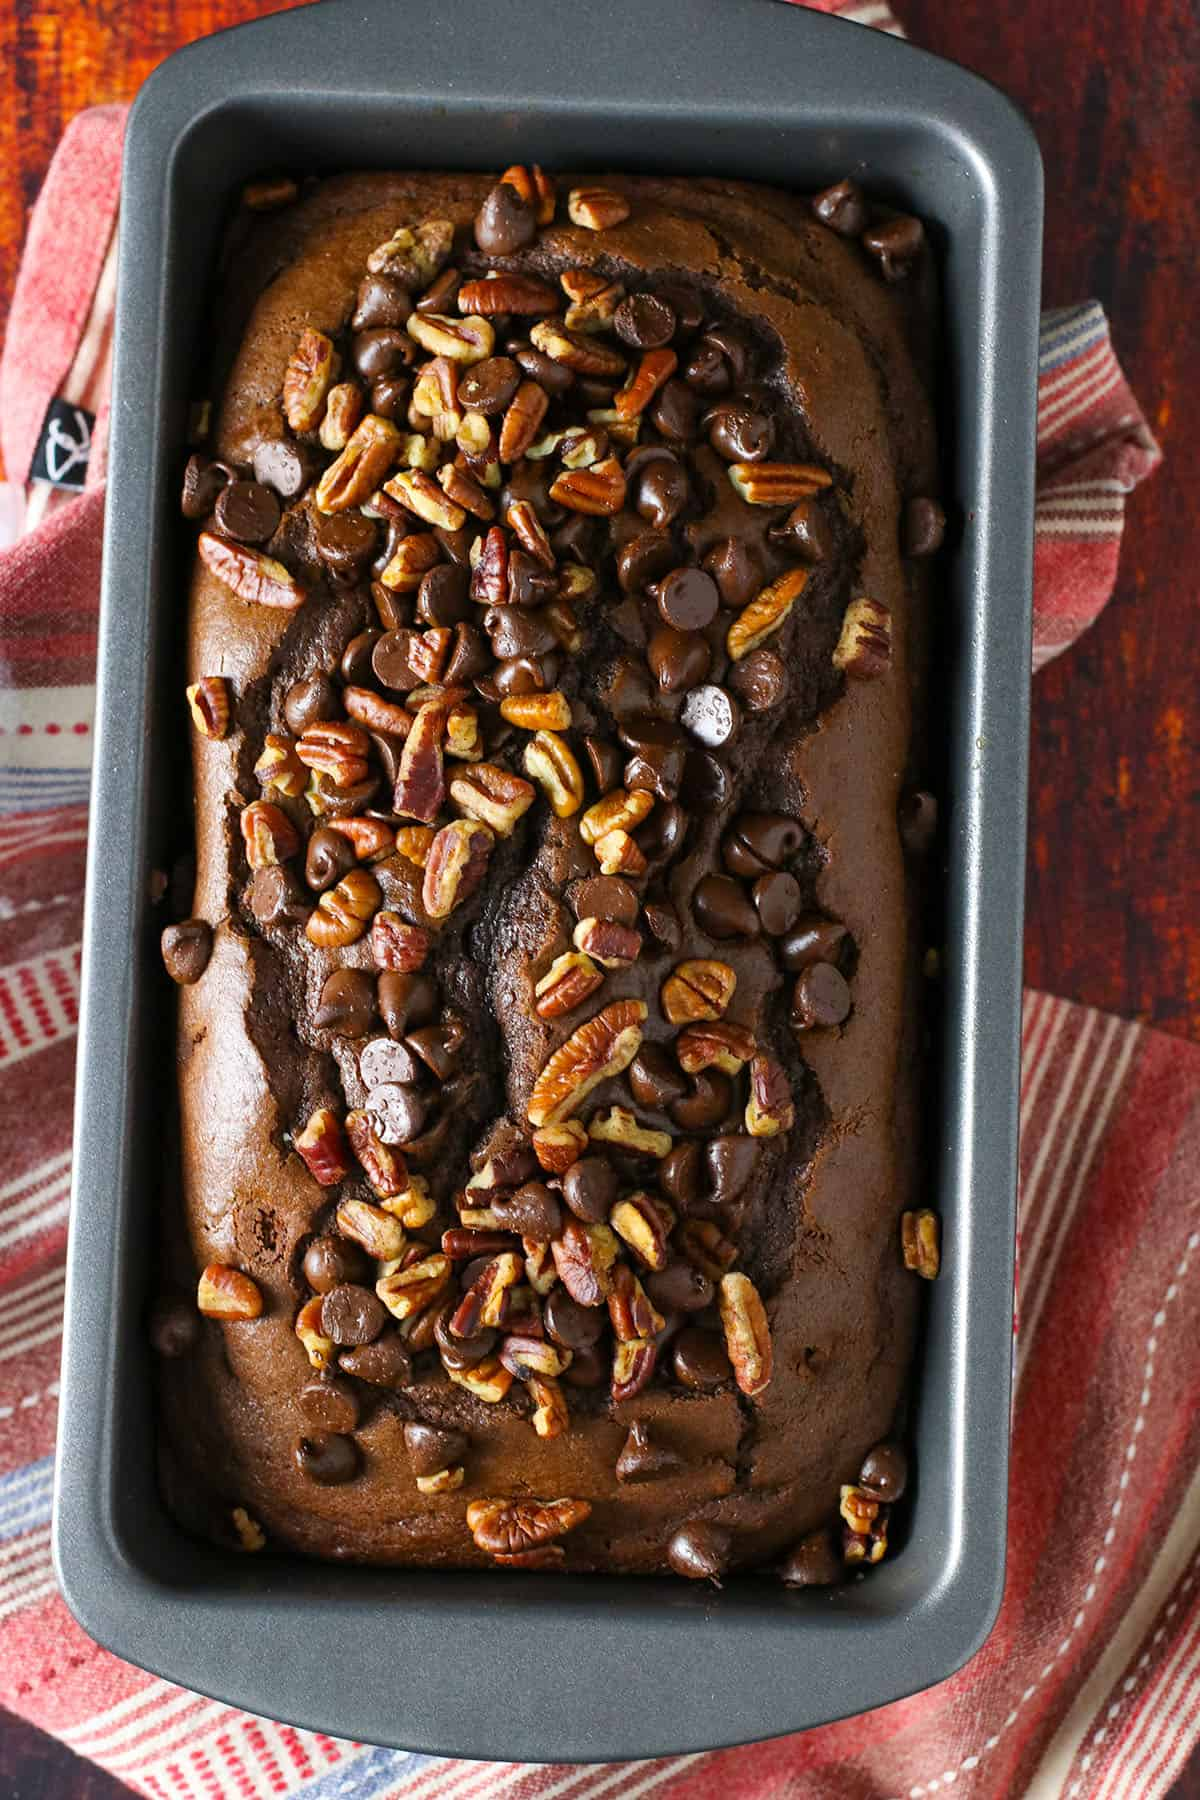 Top shot of chocolate chip loaf bread in a pan.